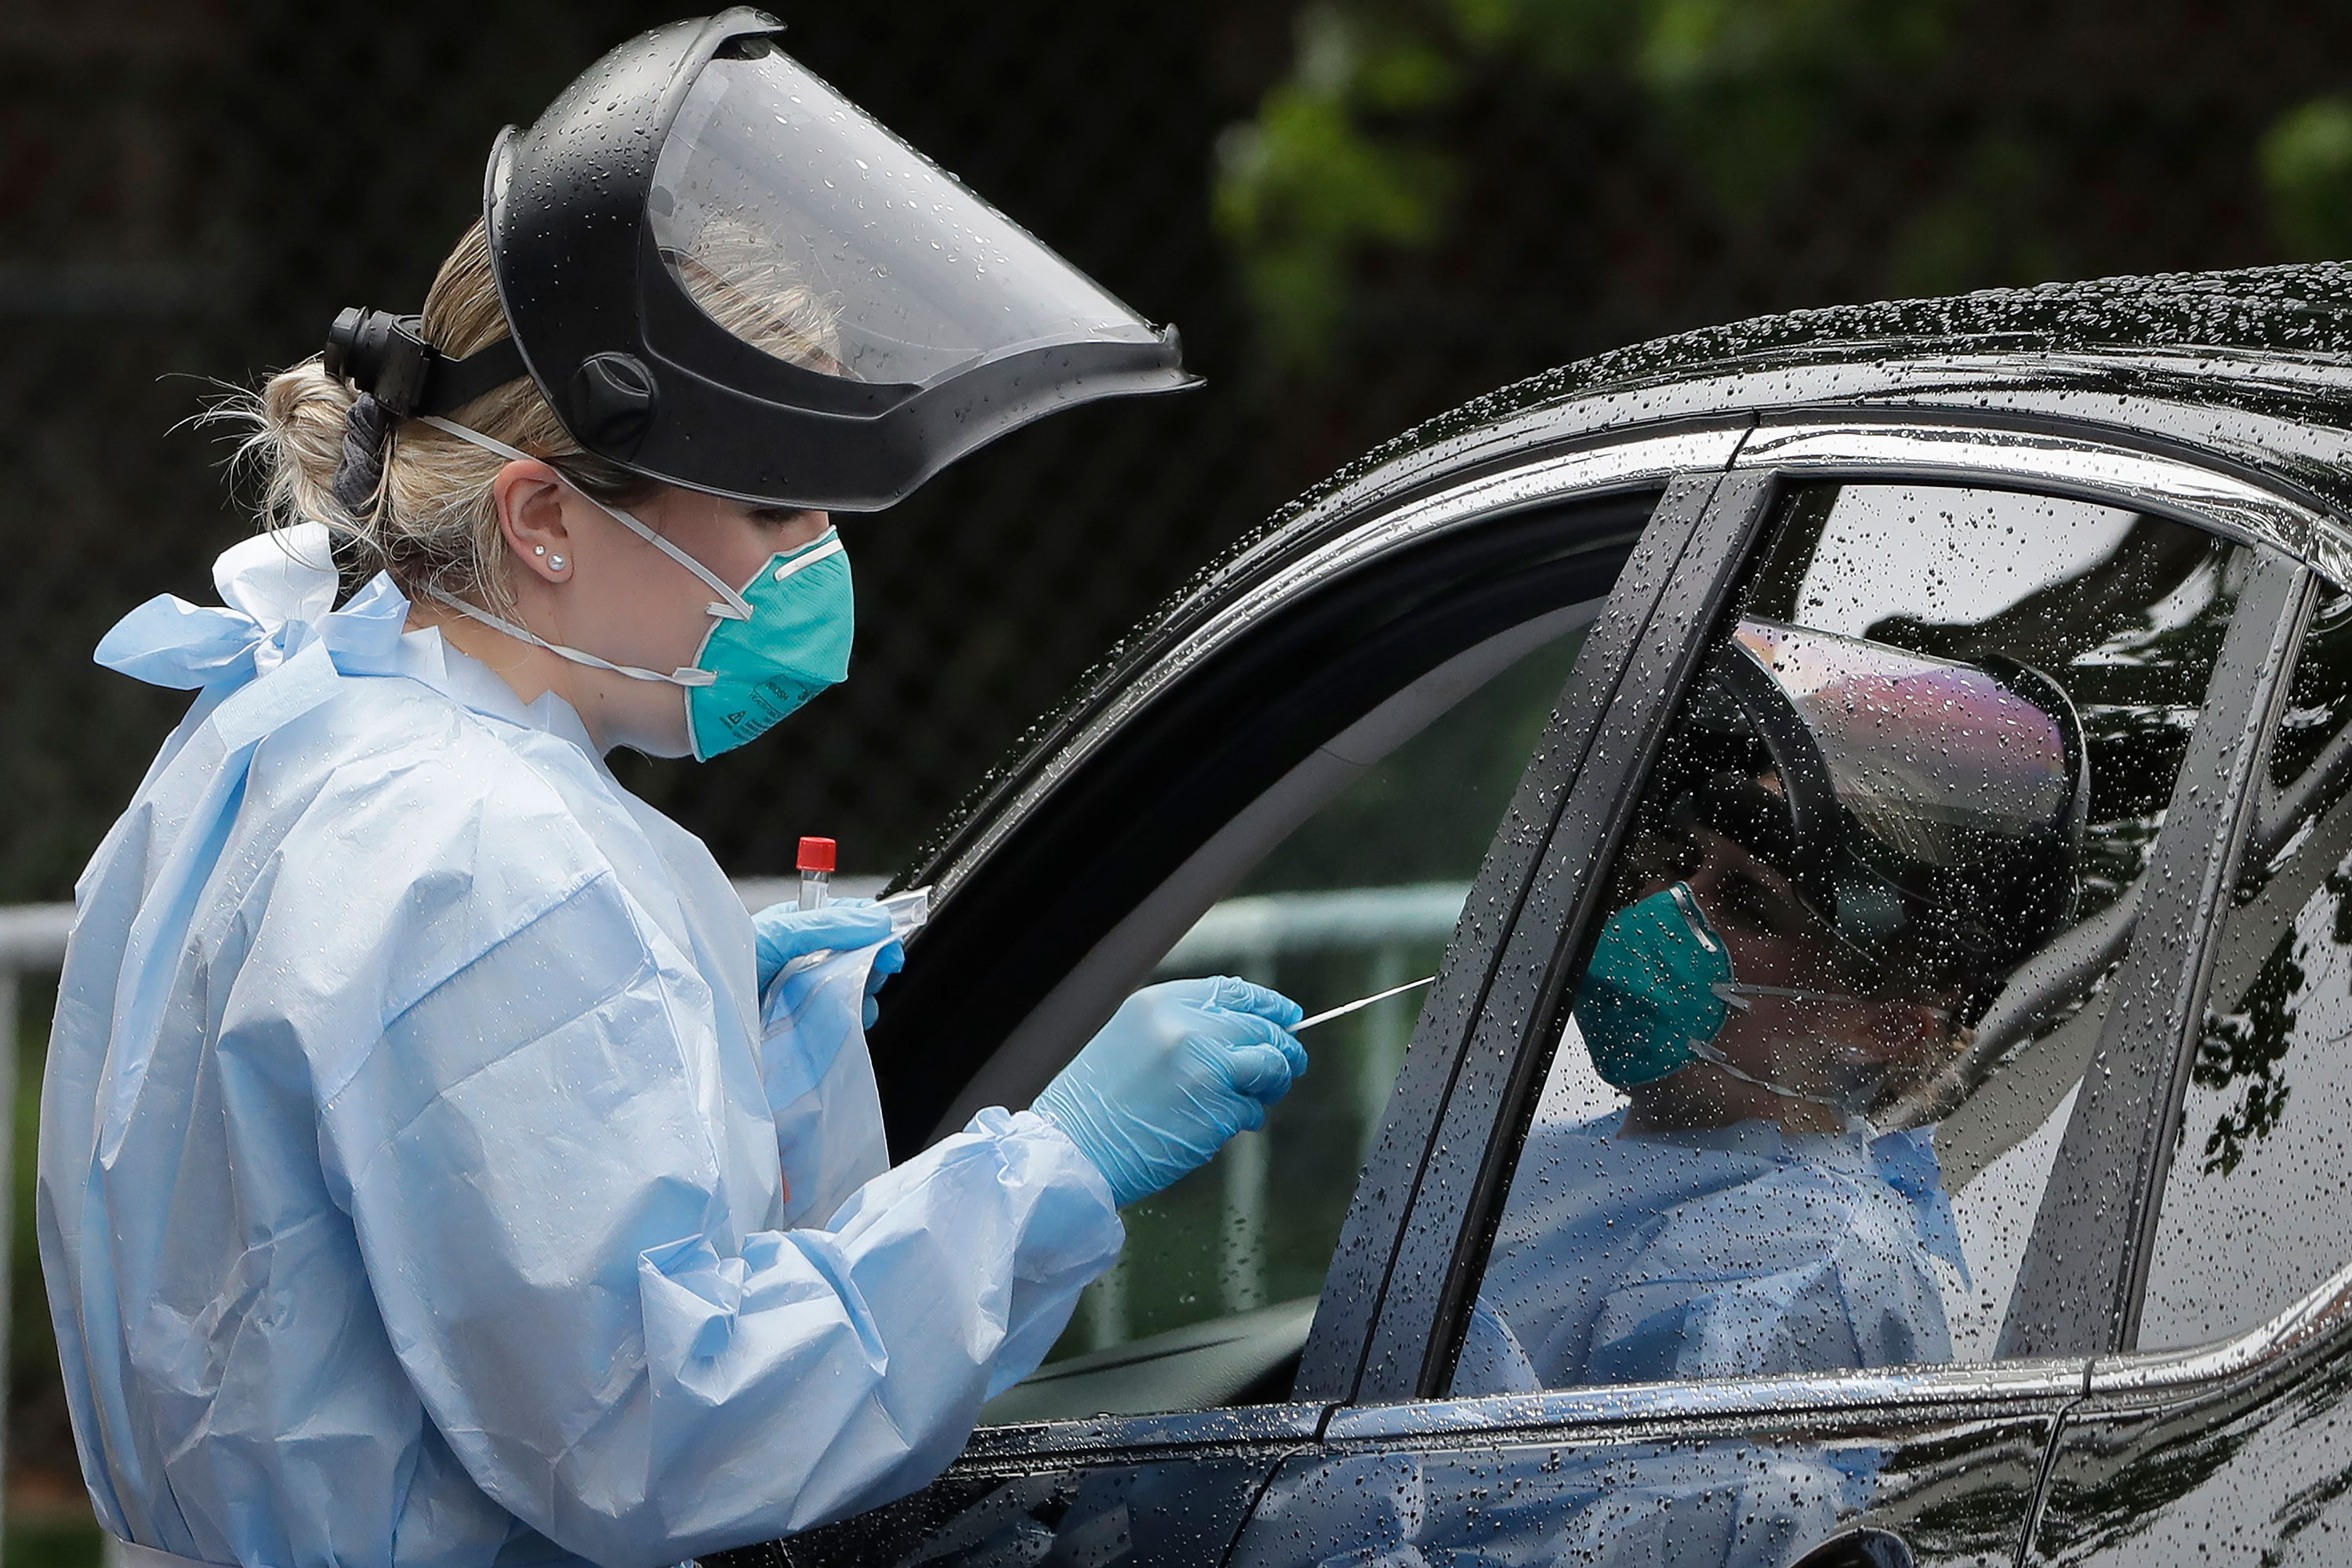 A medical worker administer a coronavirus test on June 11 in Boston.